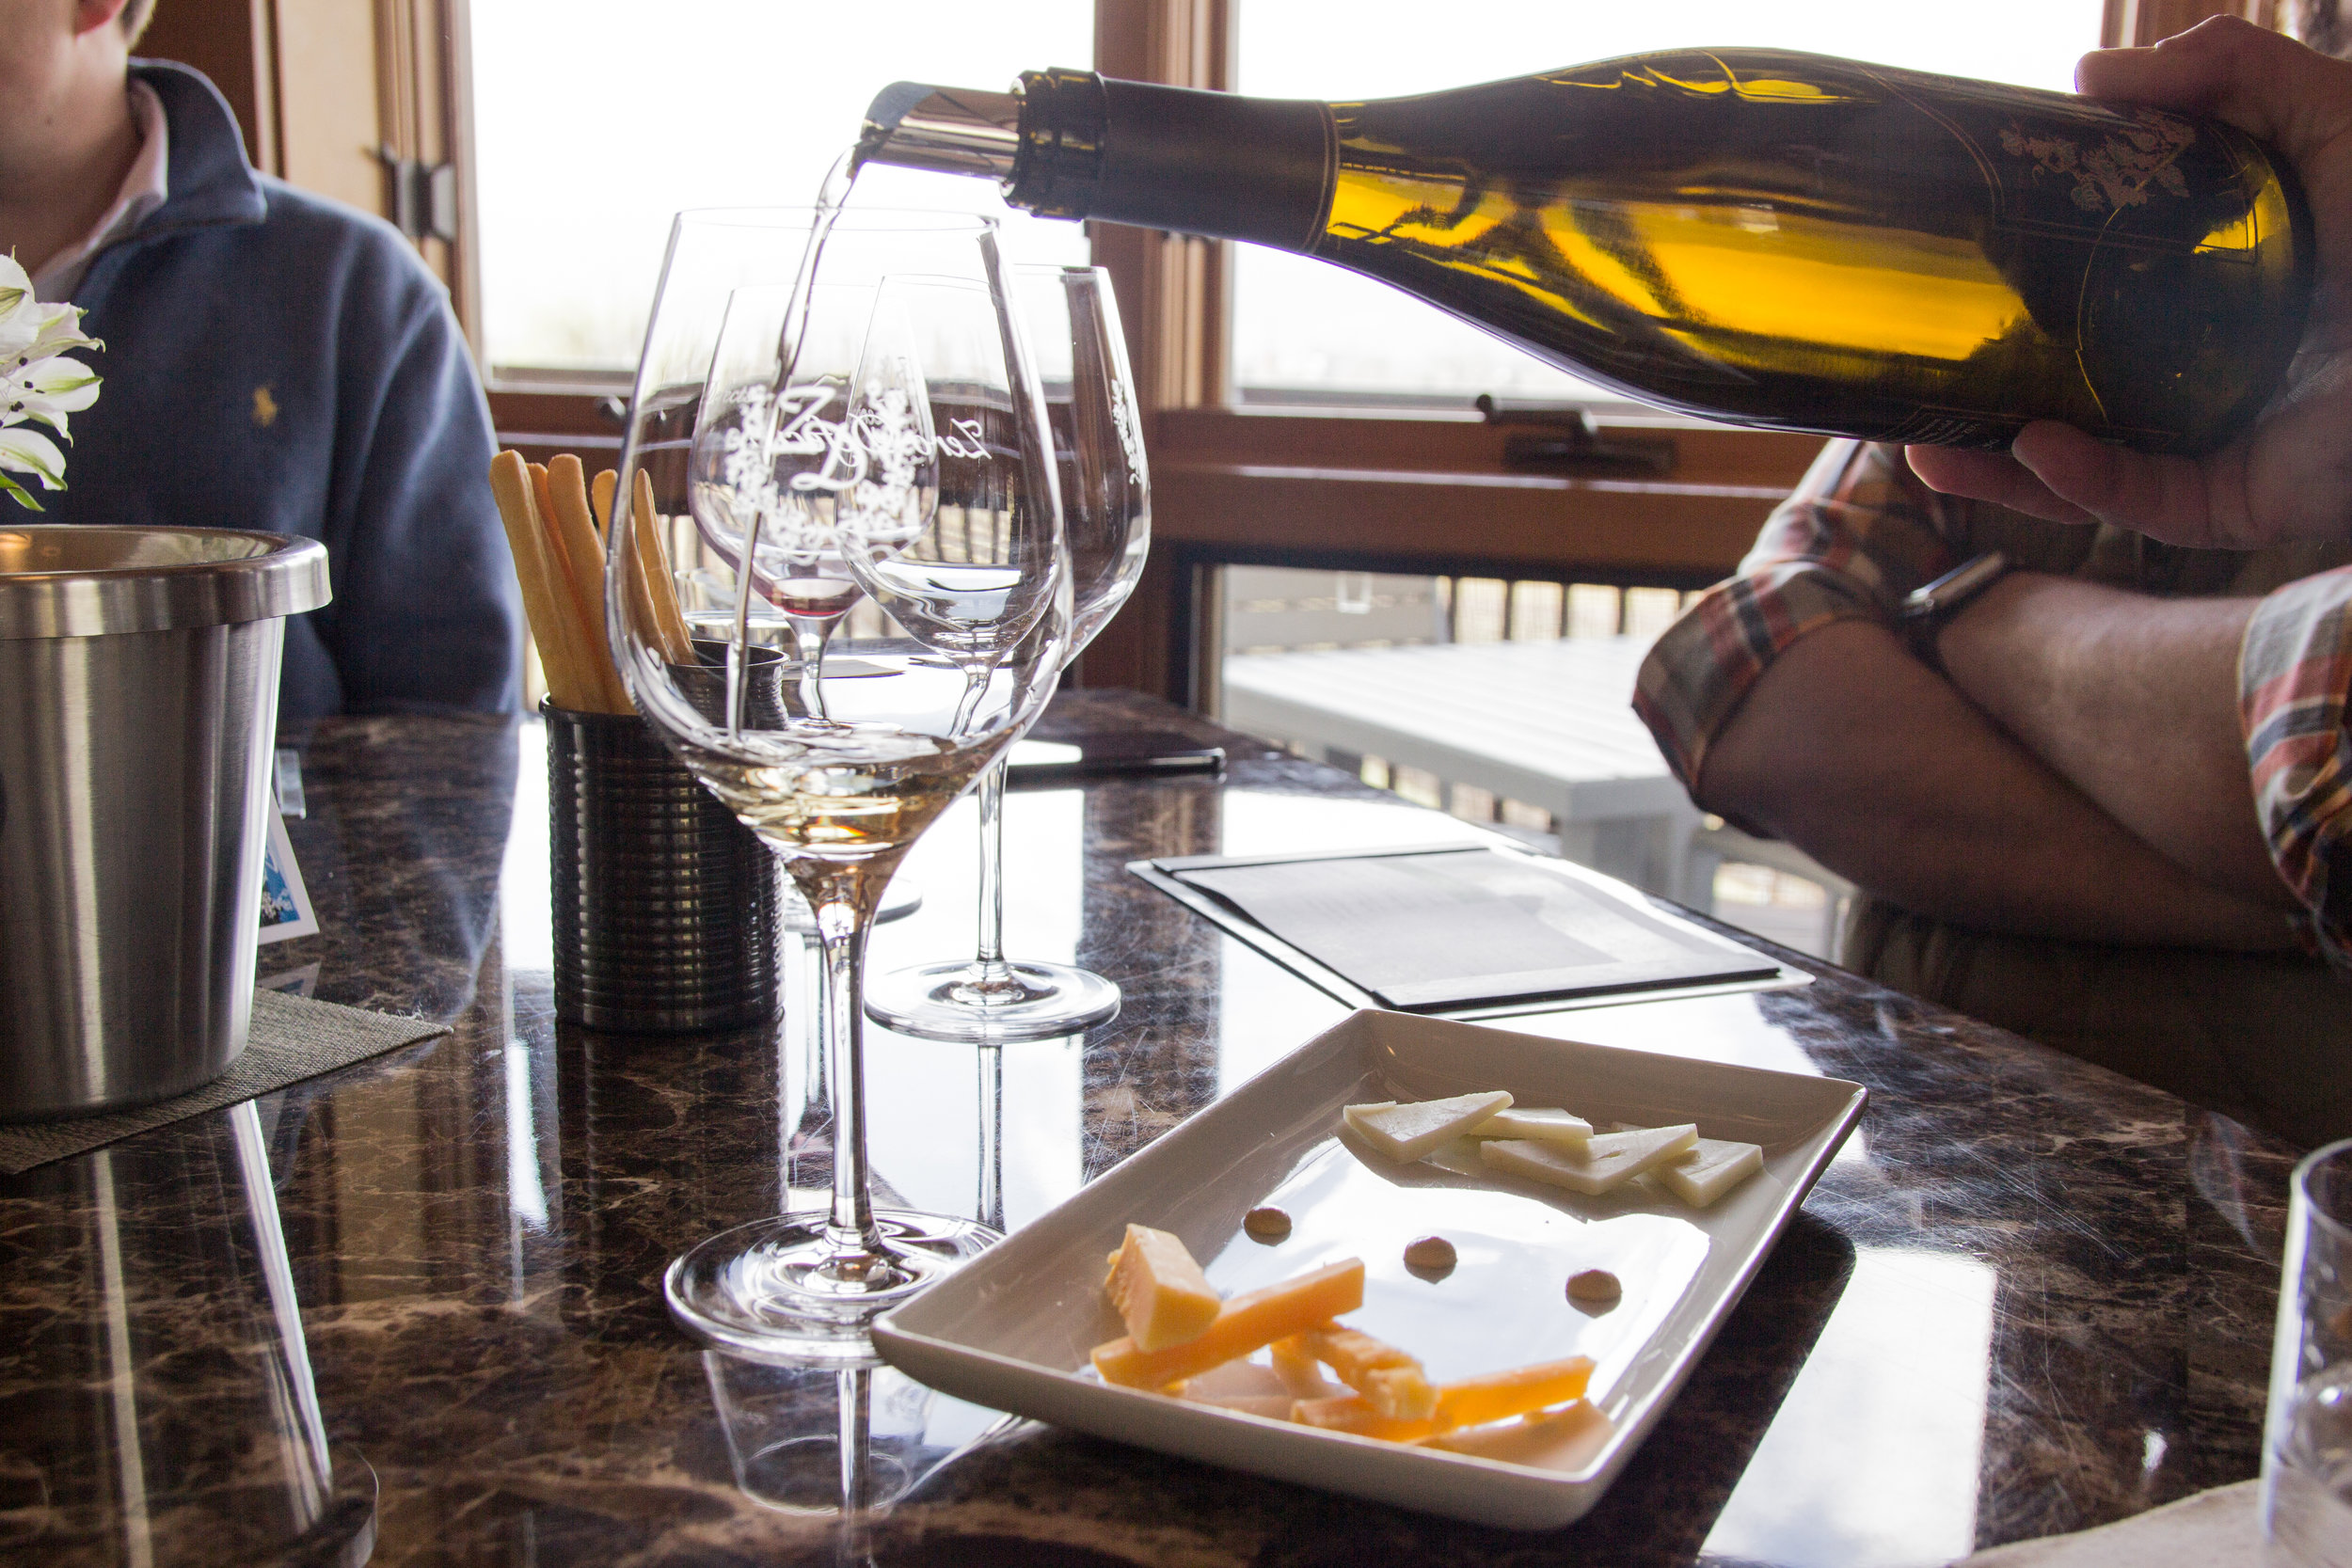 napa travel guide, where to eat and drink in napa valley and sonoma, things to do in napa, wine country, california, what wineries to visit in napa, where to eat lunch in napa, zd vineyards,